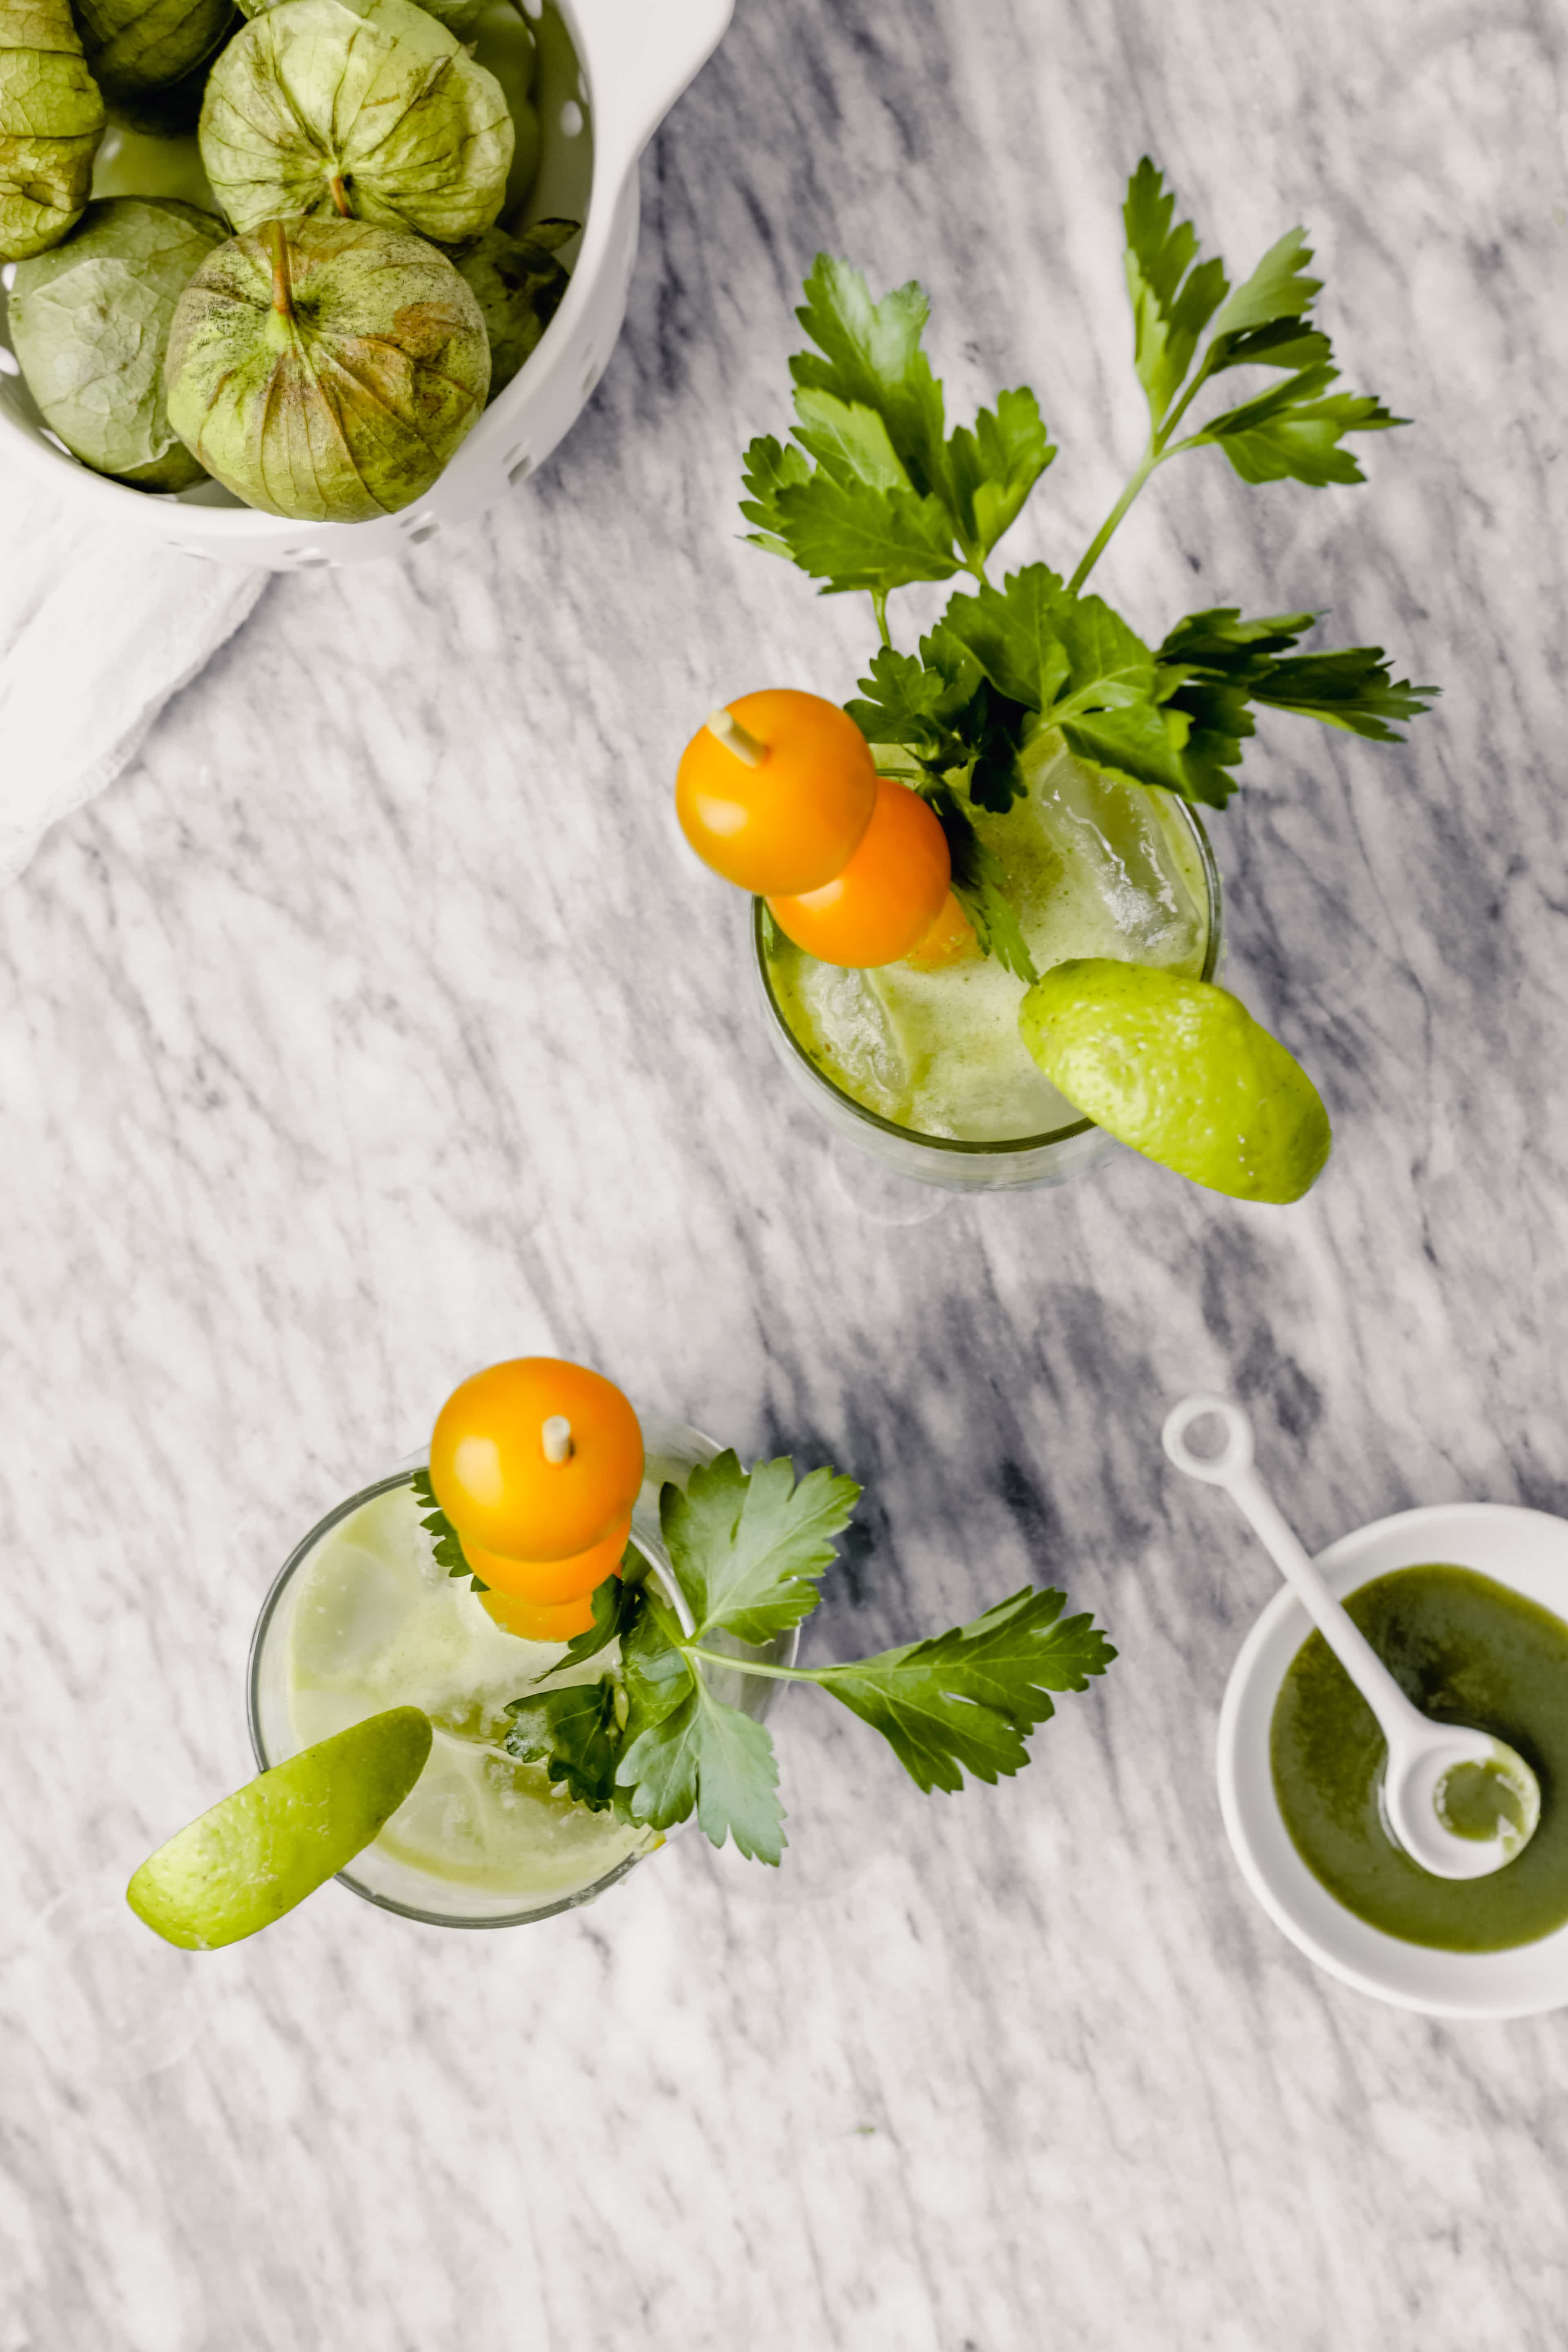 Overhead photograph of green bloody mary in tall collins glass garnishes with yellow cherry tomatoes, herbs, lime wedge and apple slice.